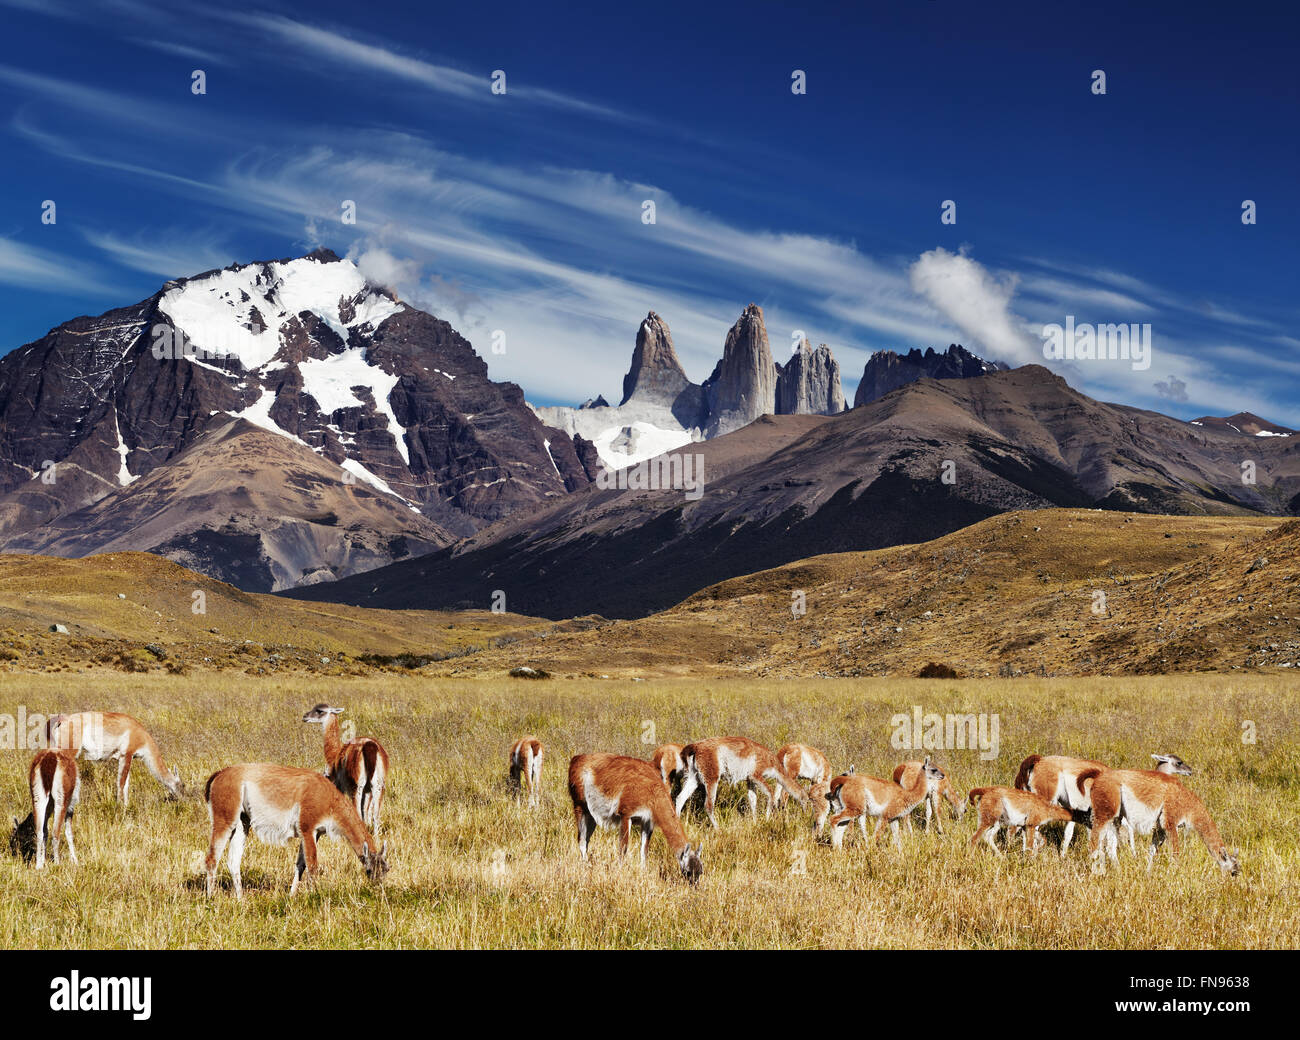 Troupeau de guanacos dans le Parc National Torres del Paine, Patagonie, Chili Photo Stock